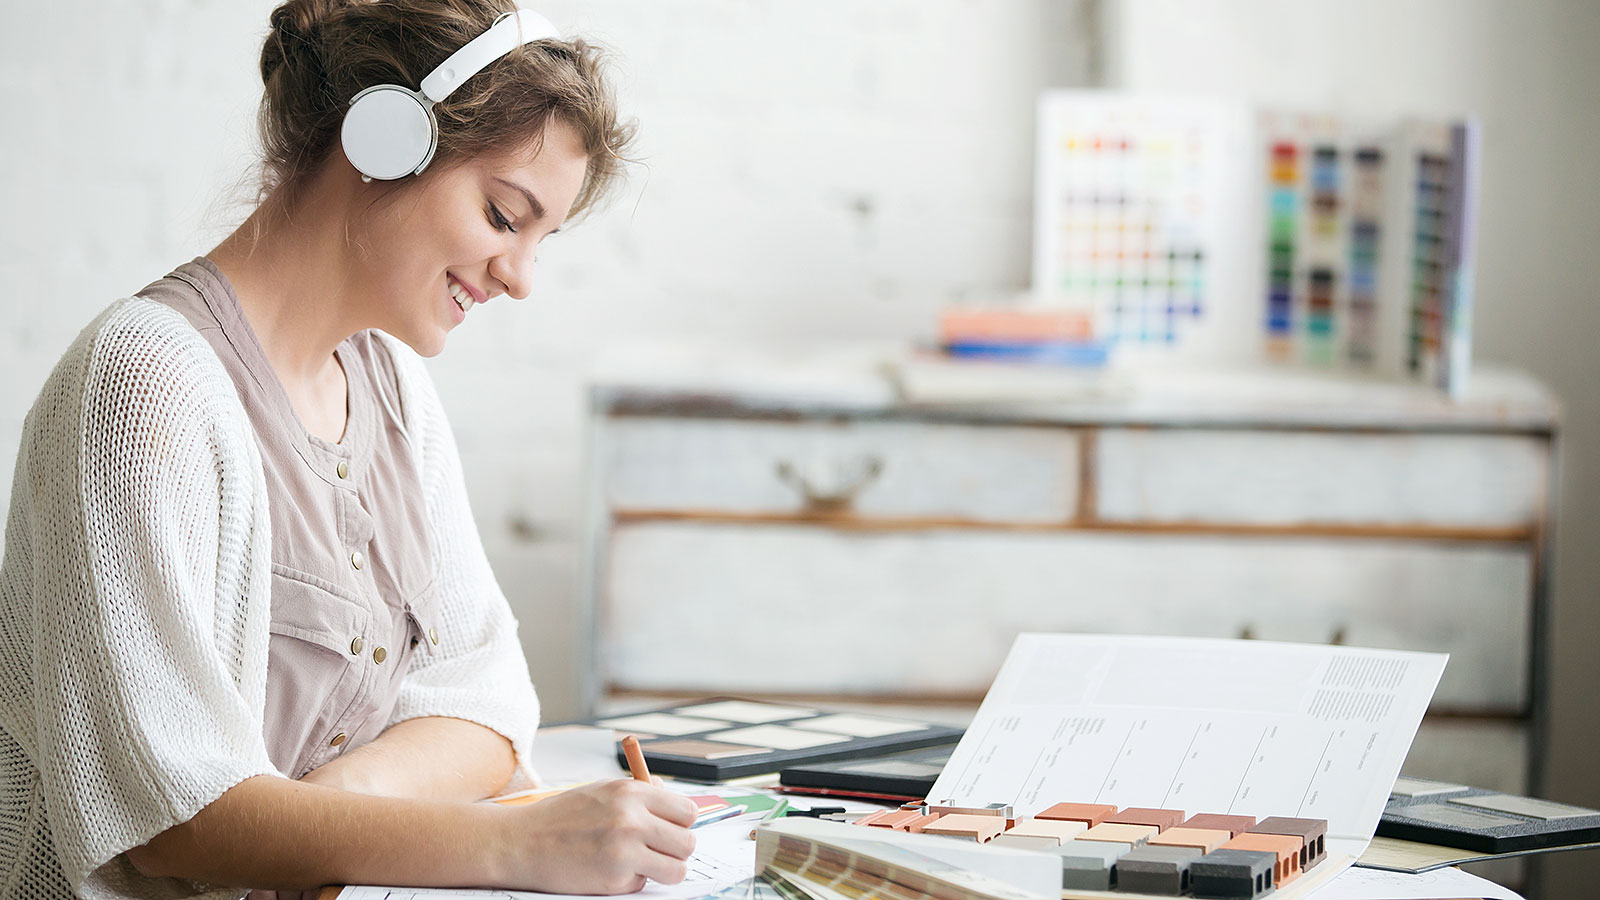 5 types of music that will increase your productivity, according to science